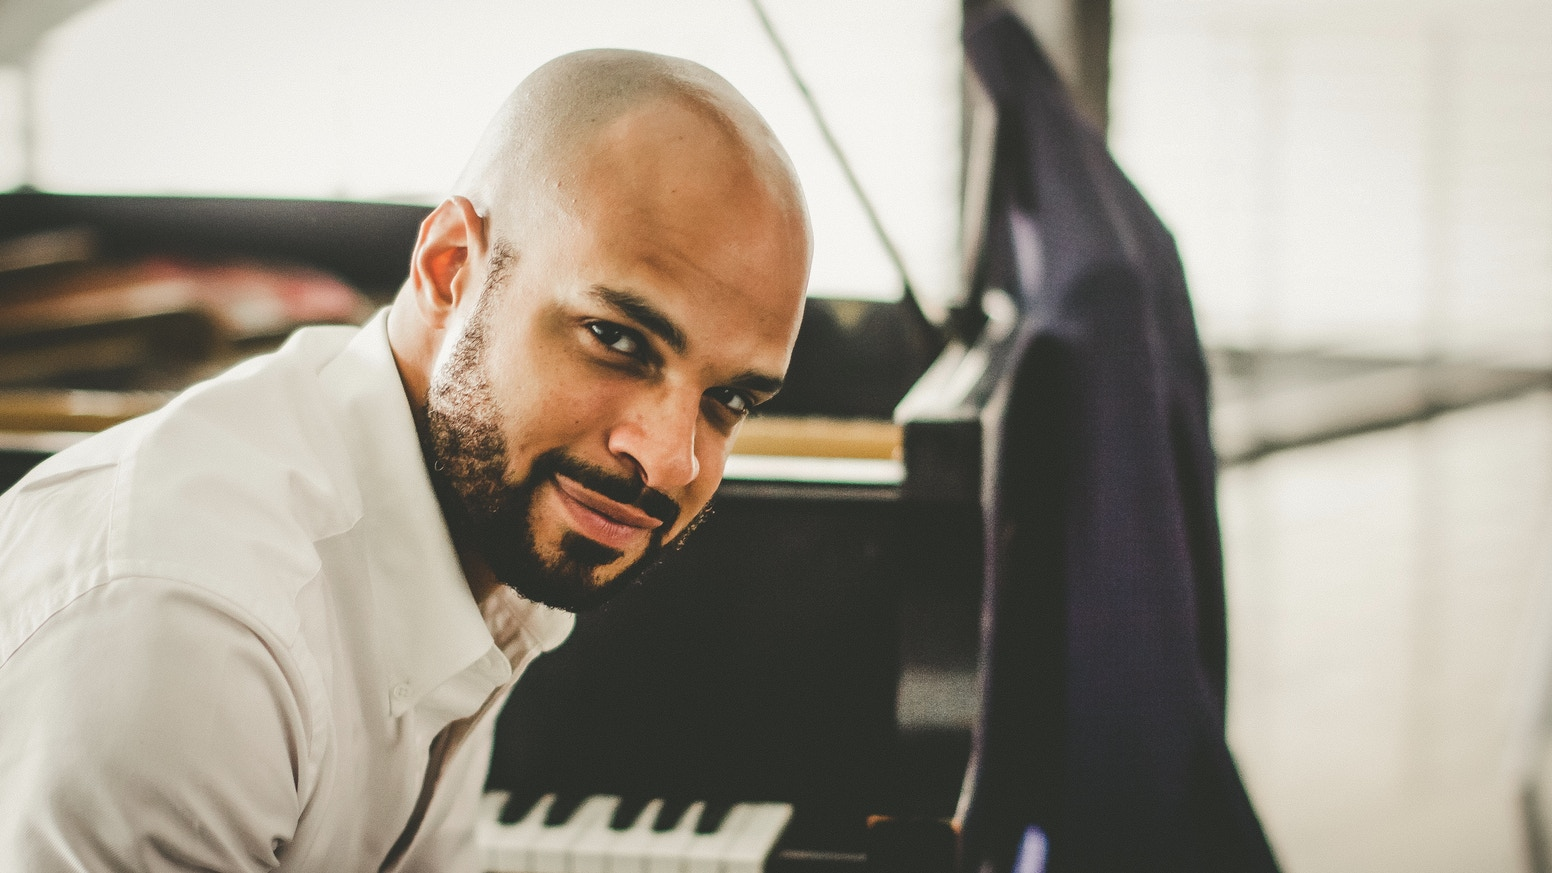 The Masters' Apprentice is a story of resilience—of enduring rejection, toil, and injury to create an album of amazing piano music.